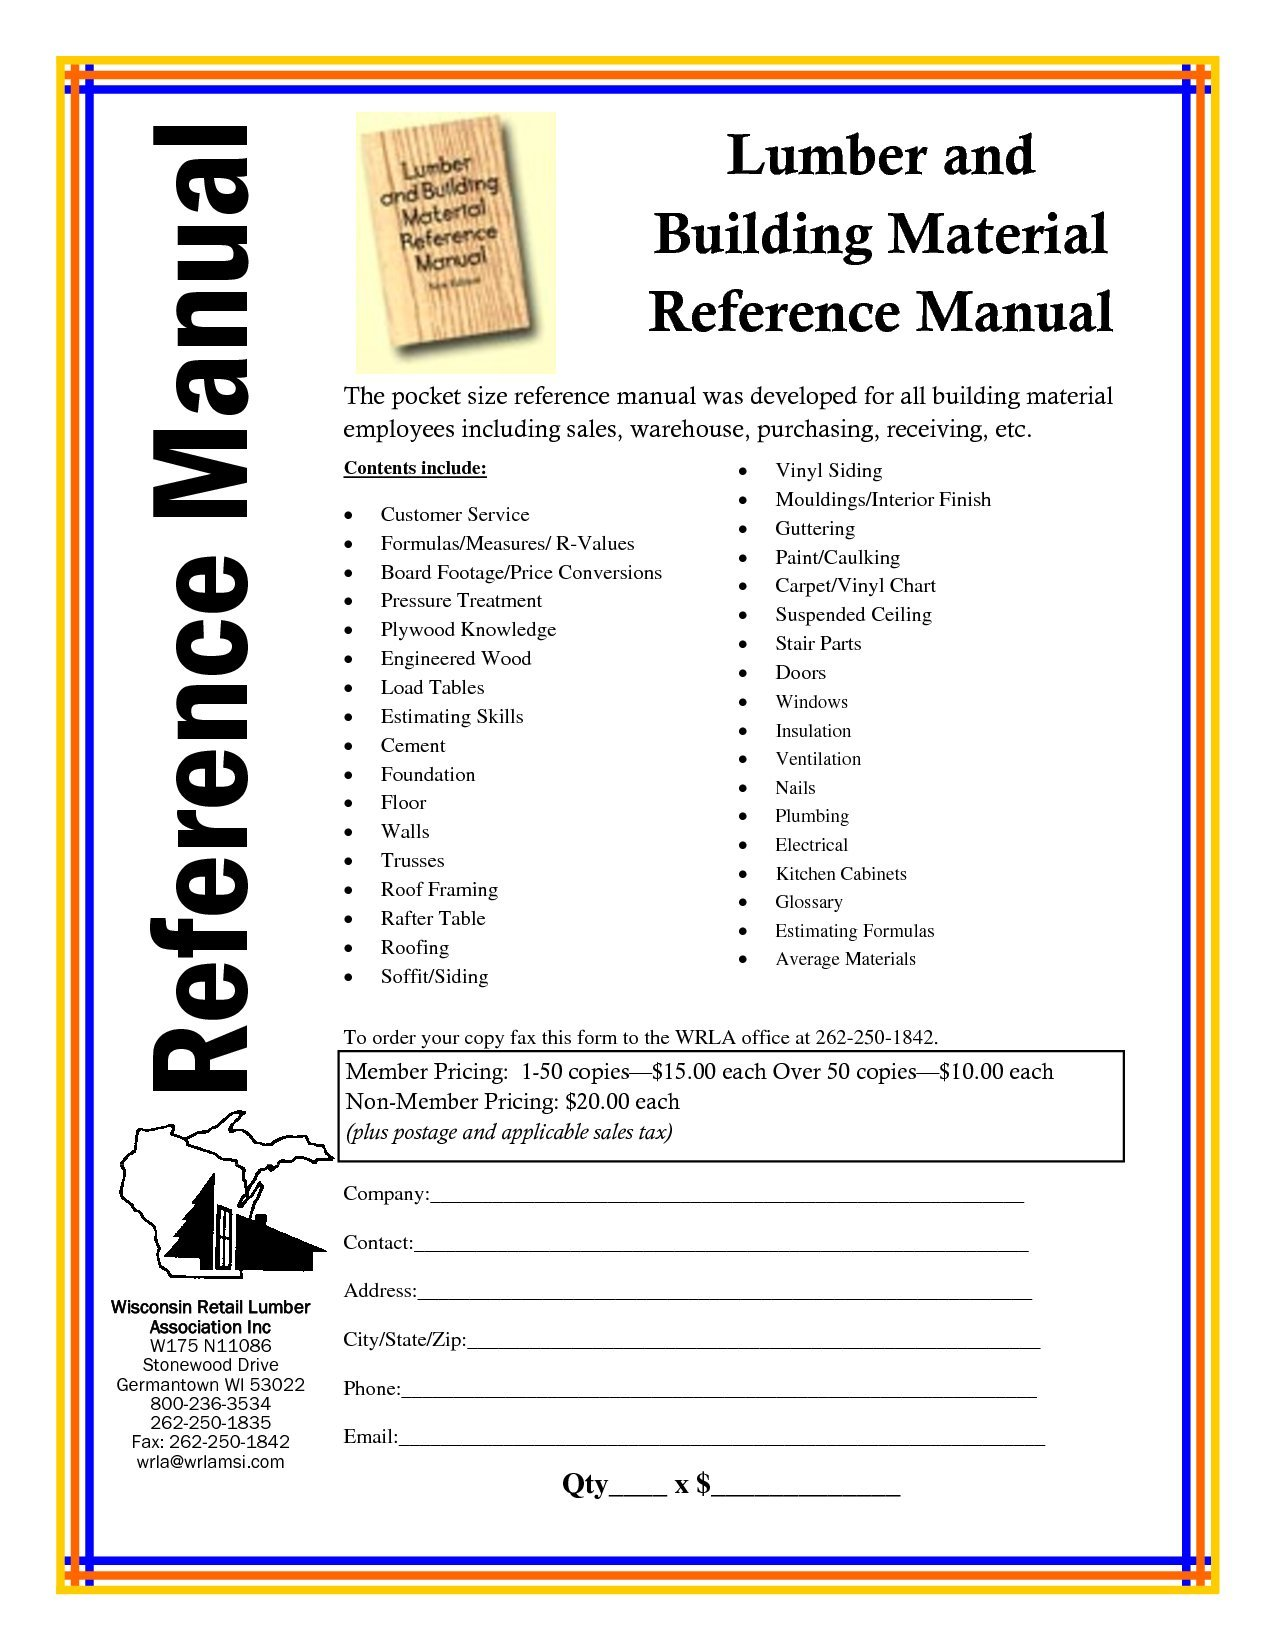 Lumber and building material reference manual: Guy A Fowler: Amazon.com:  Books